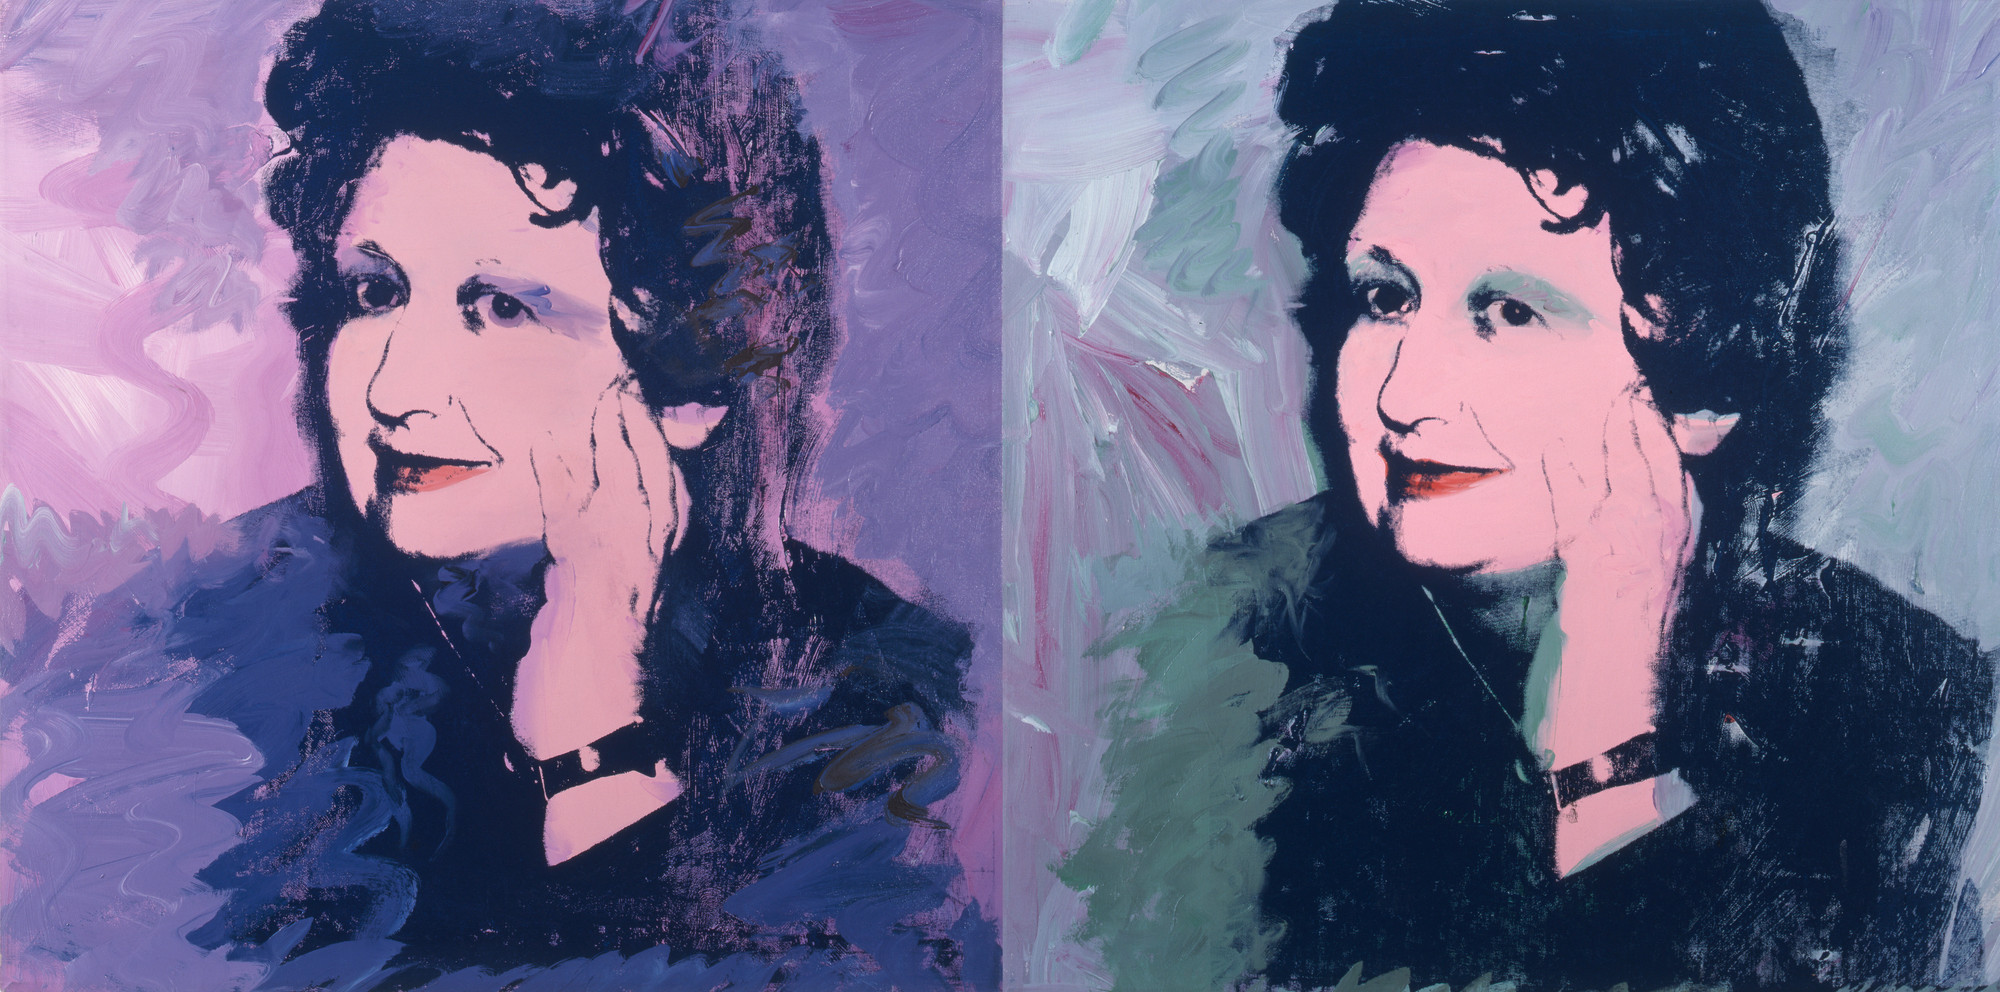 "Andy Warhol (American, 1928–1987). Ileana Sonnabend. 1973. Acrylic and silkscreen ink on canvas, two panels, 40 x 80"" (101.6 x 203.2 cm). The Sonnabend Collection. © 2013 Andy Warhol Foundation for the Visual Arts/Artists Rights Society (ARS), New York"